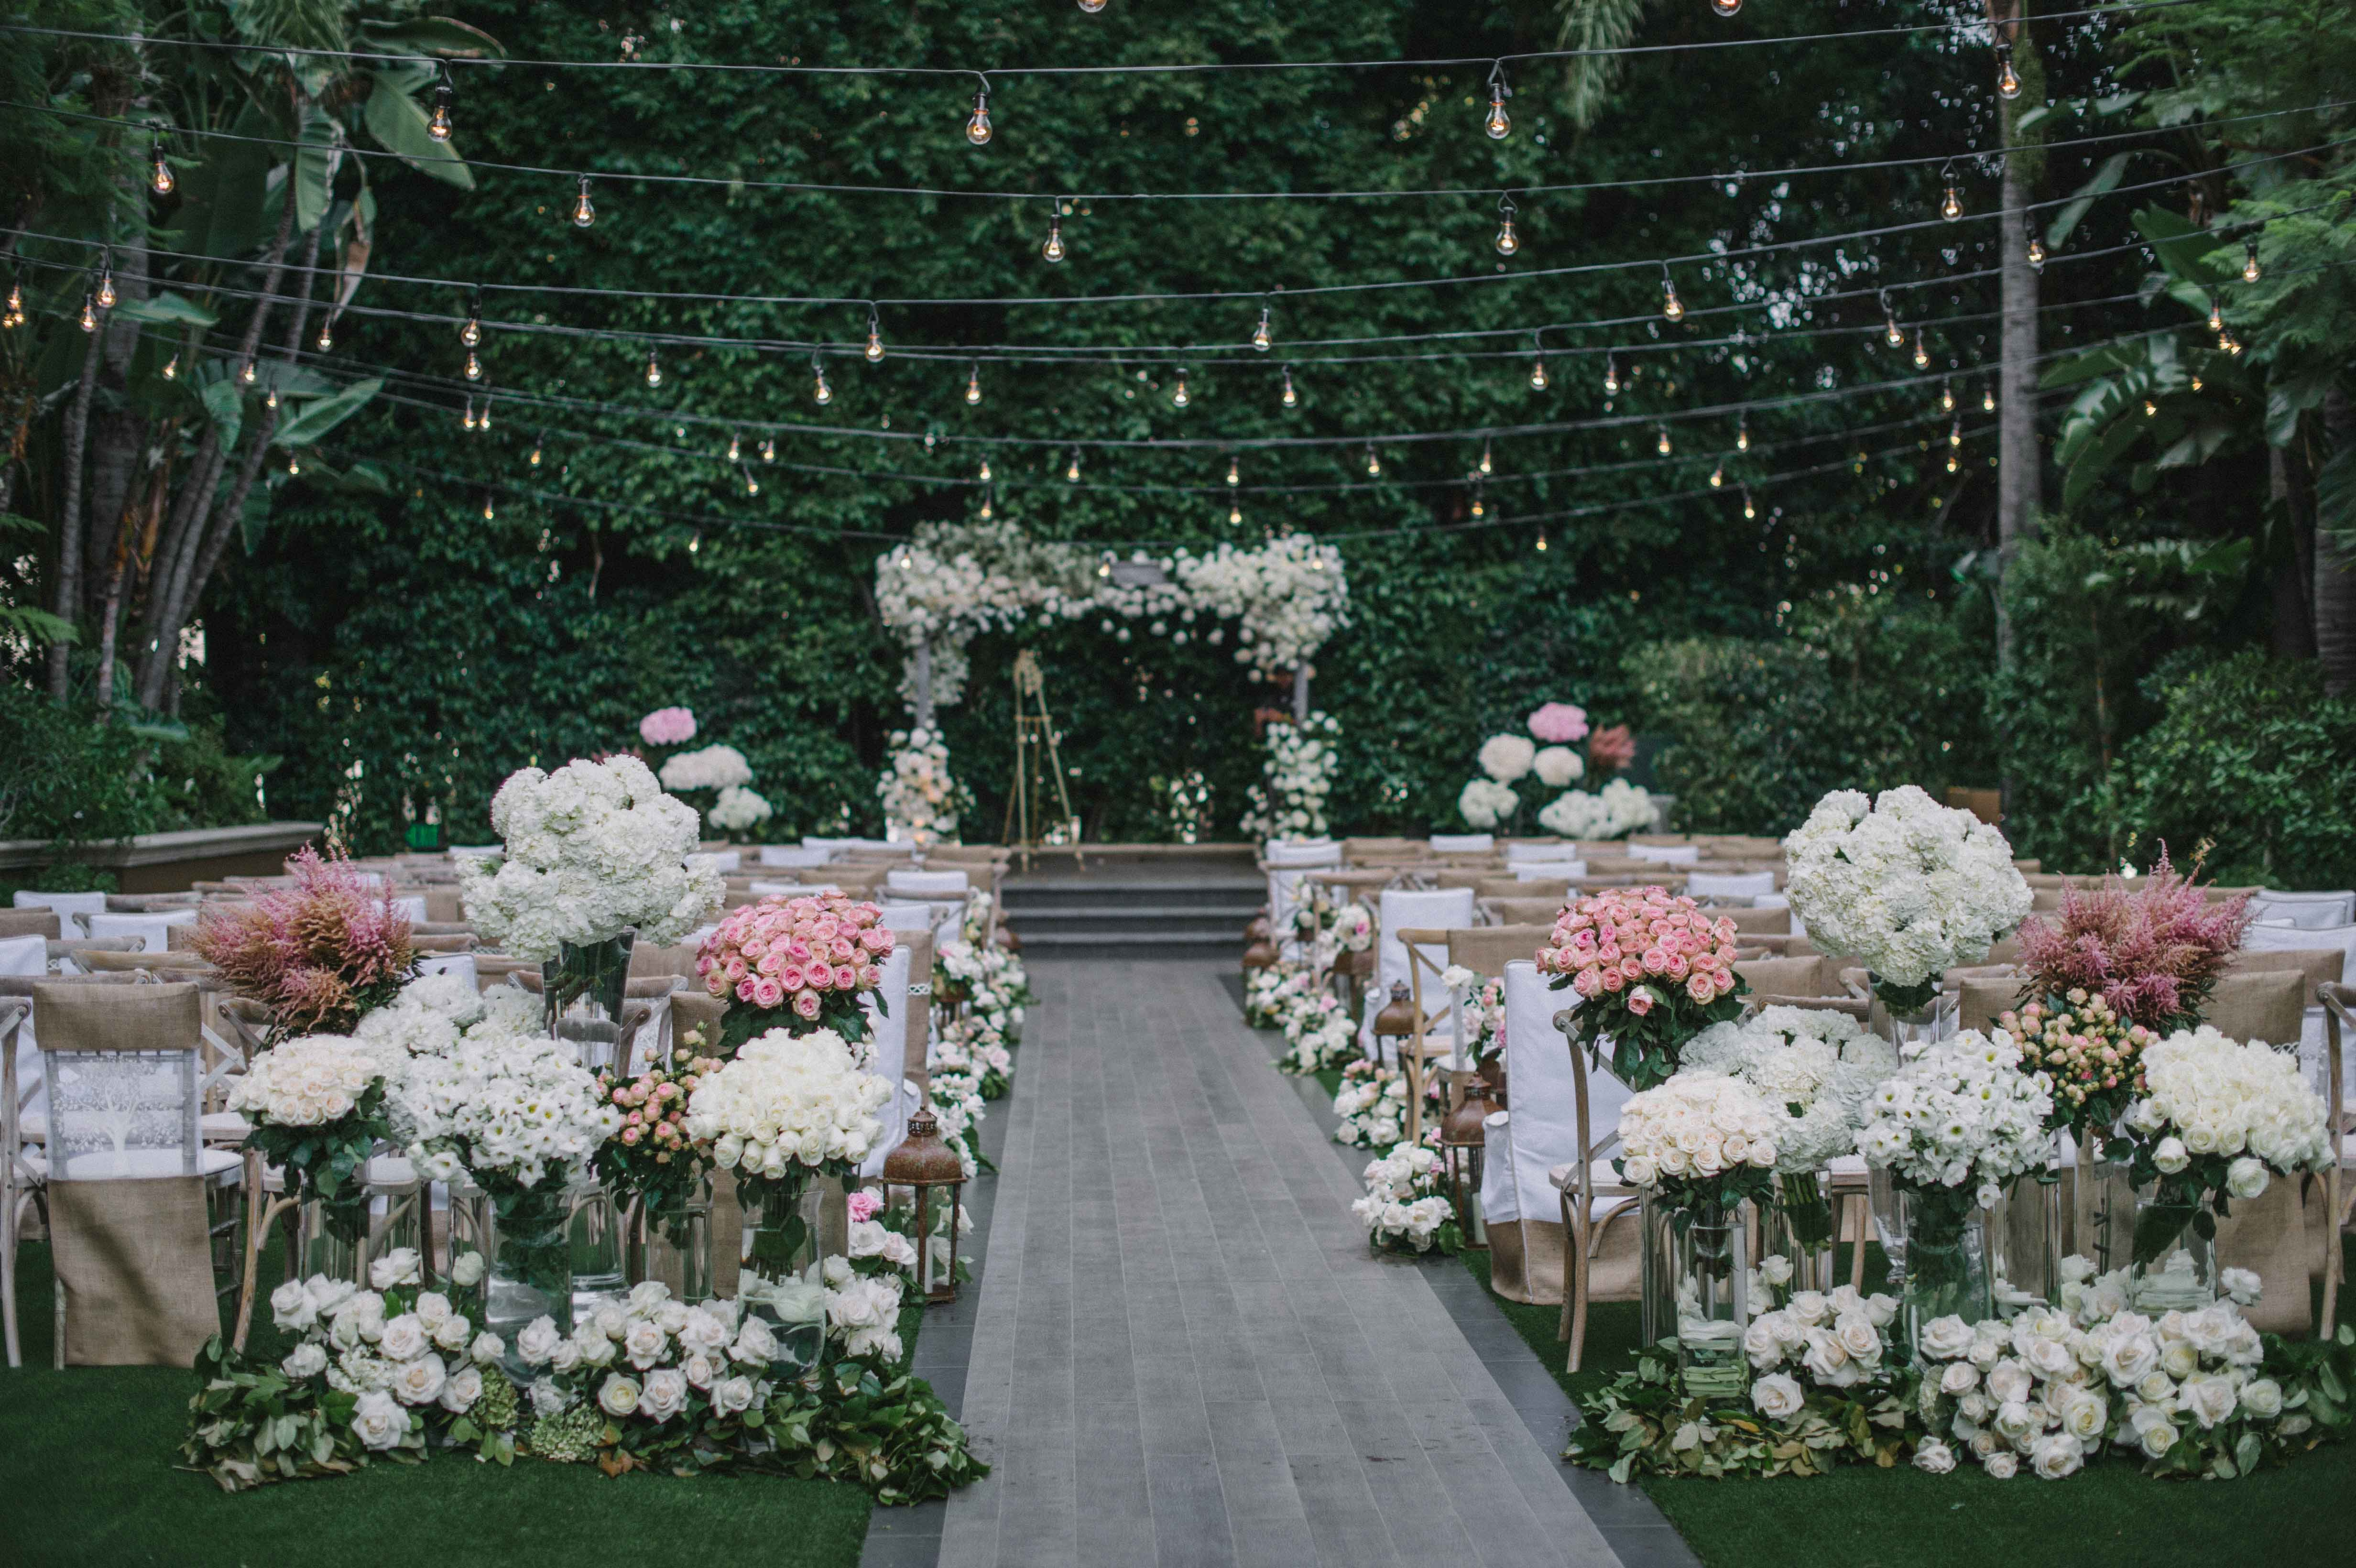 chuppah of white flowers on stage